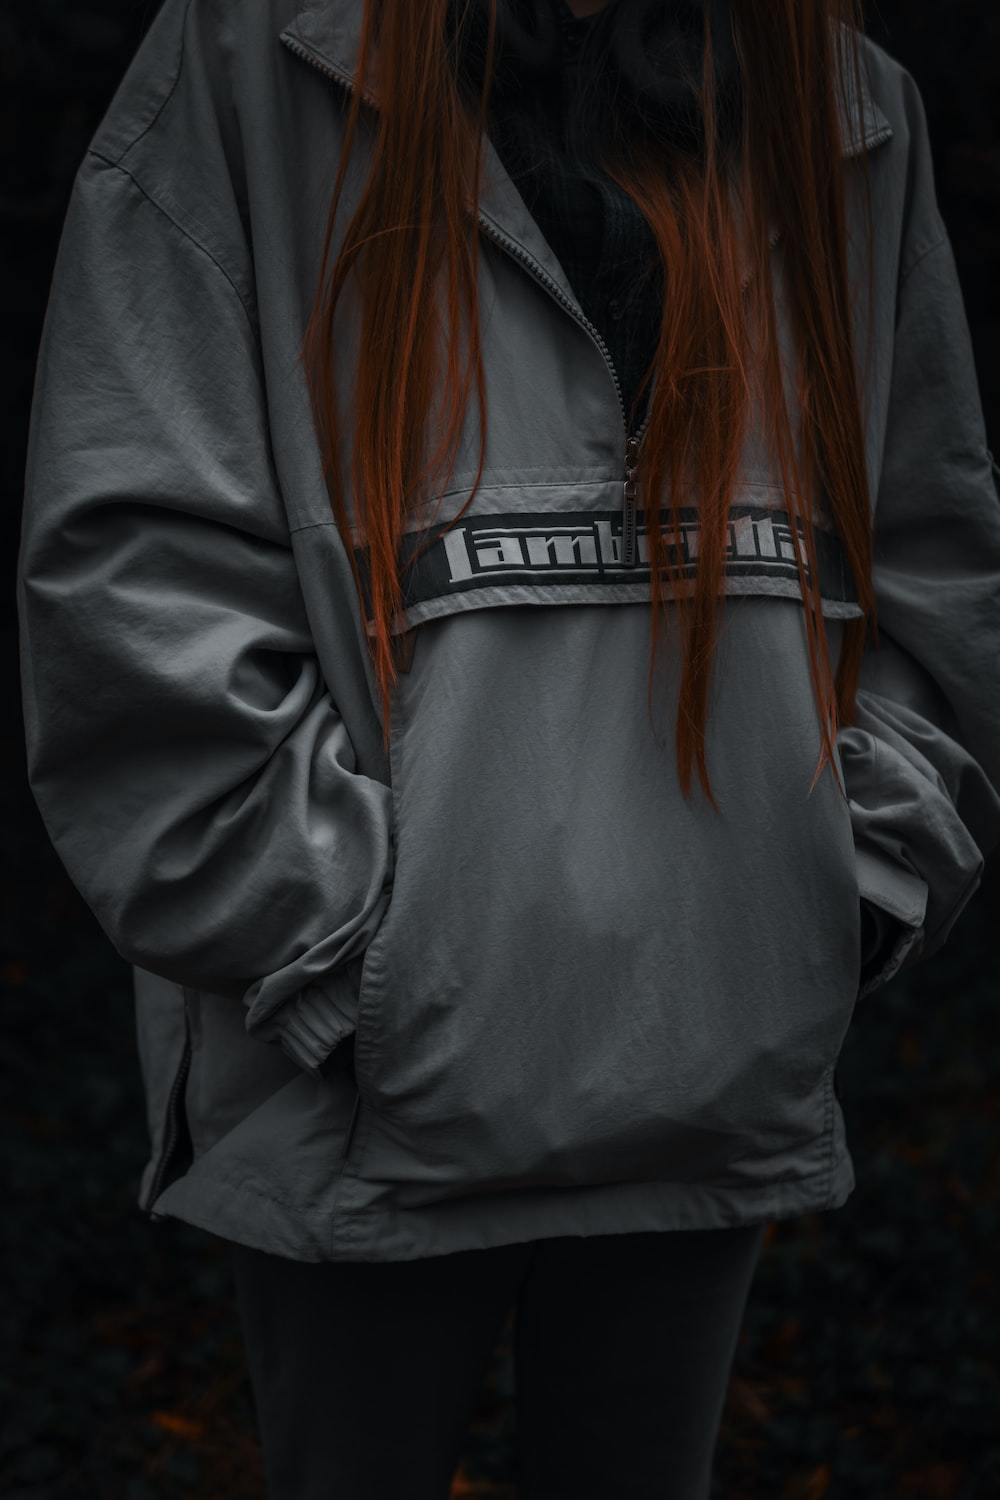 woman in gray and white zip up jacket